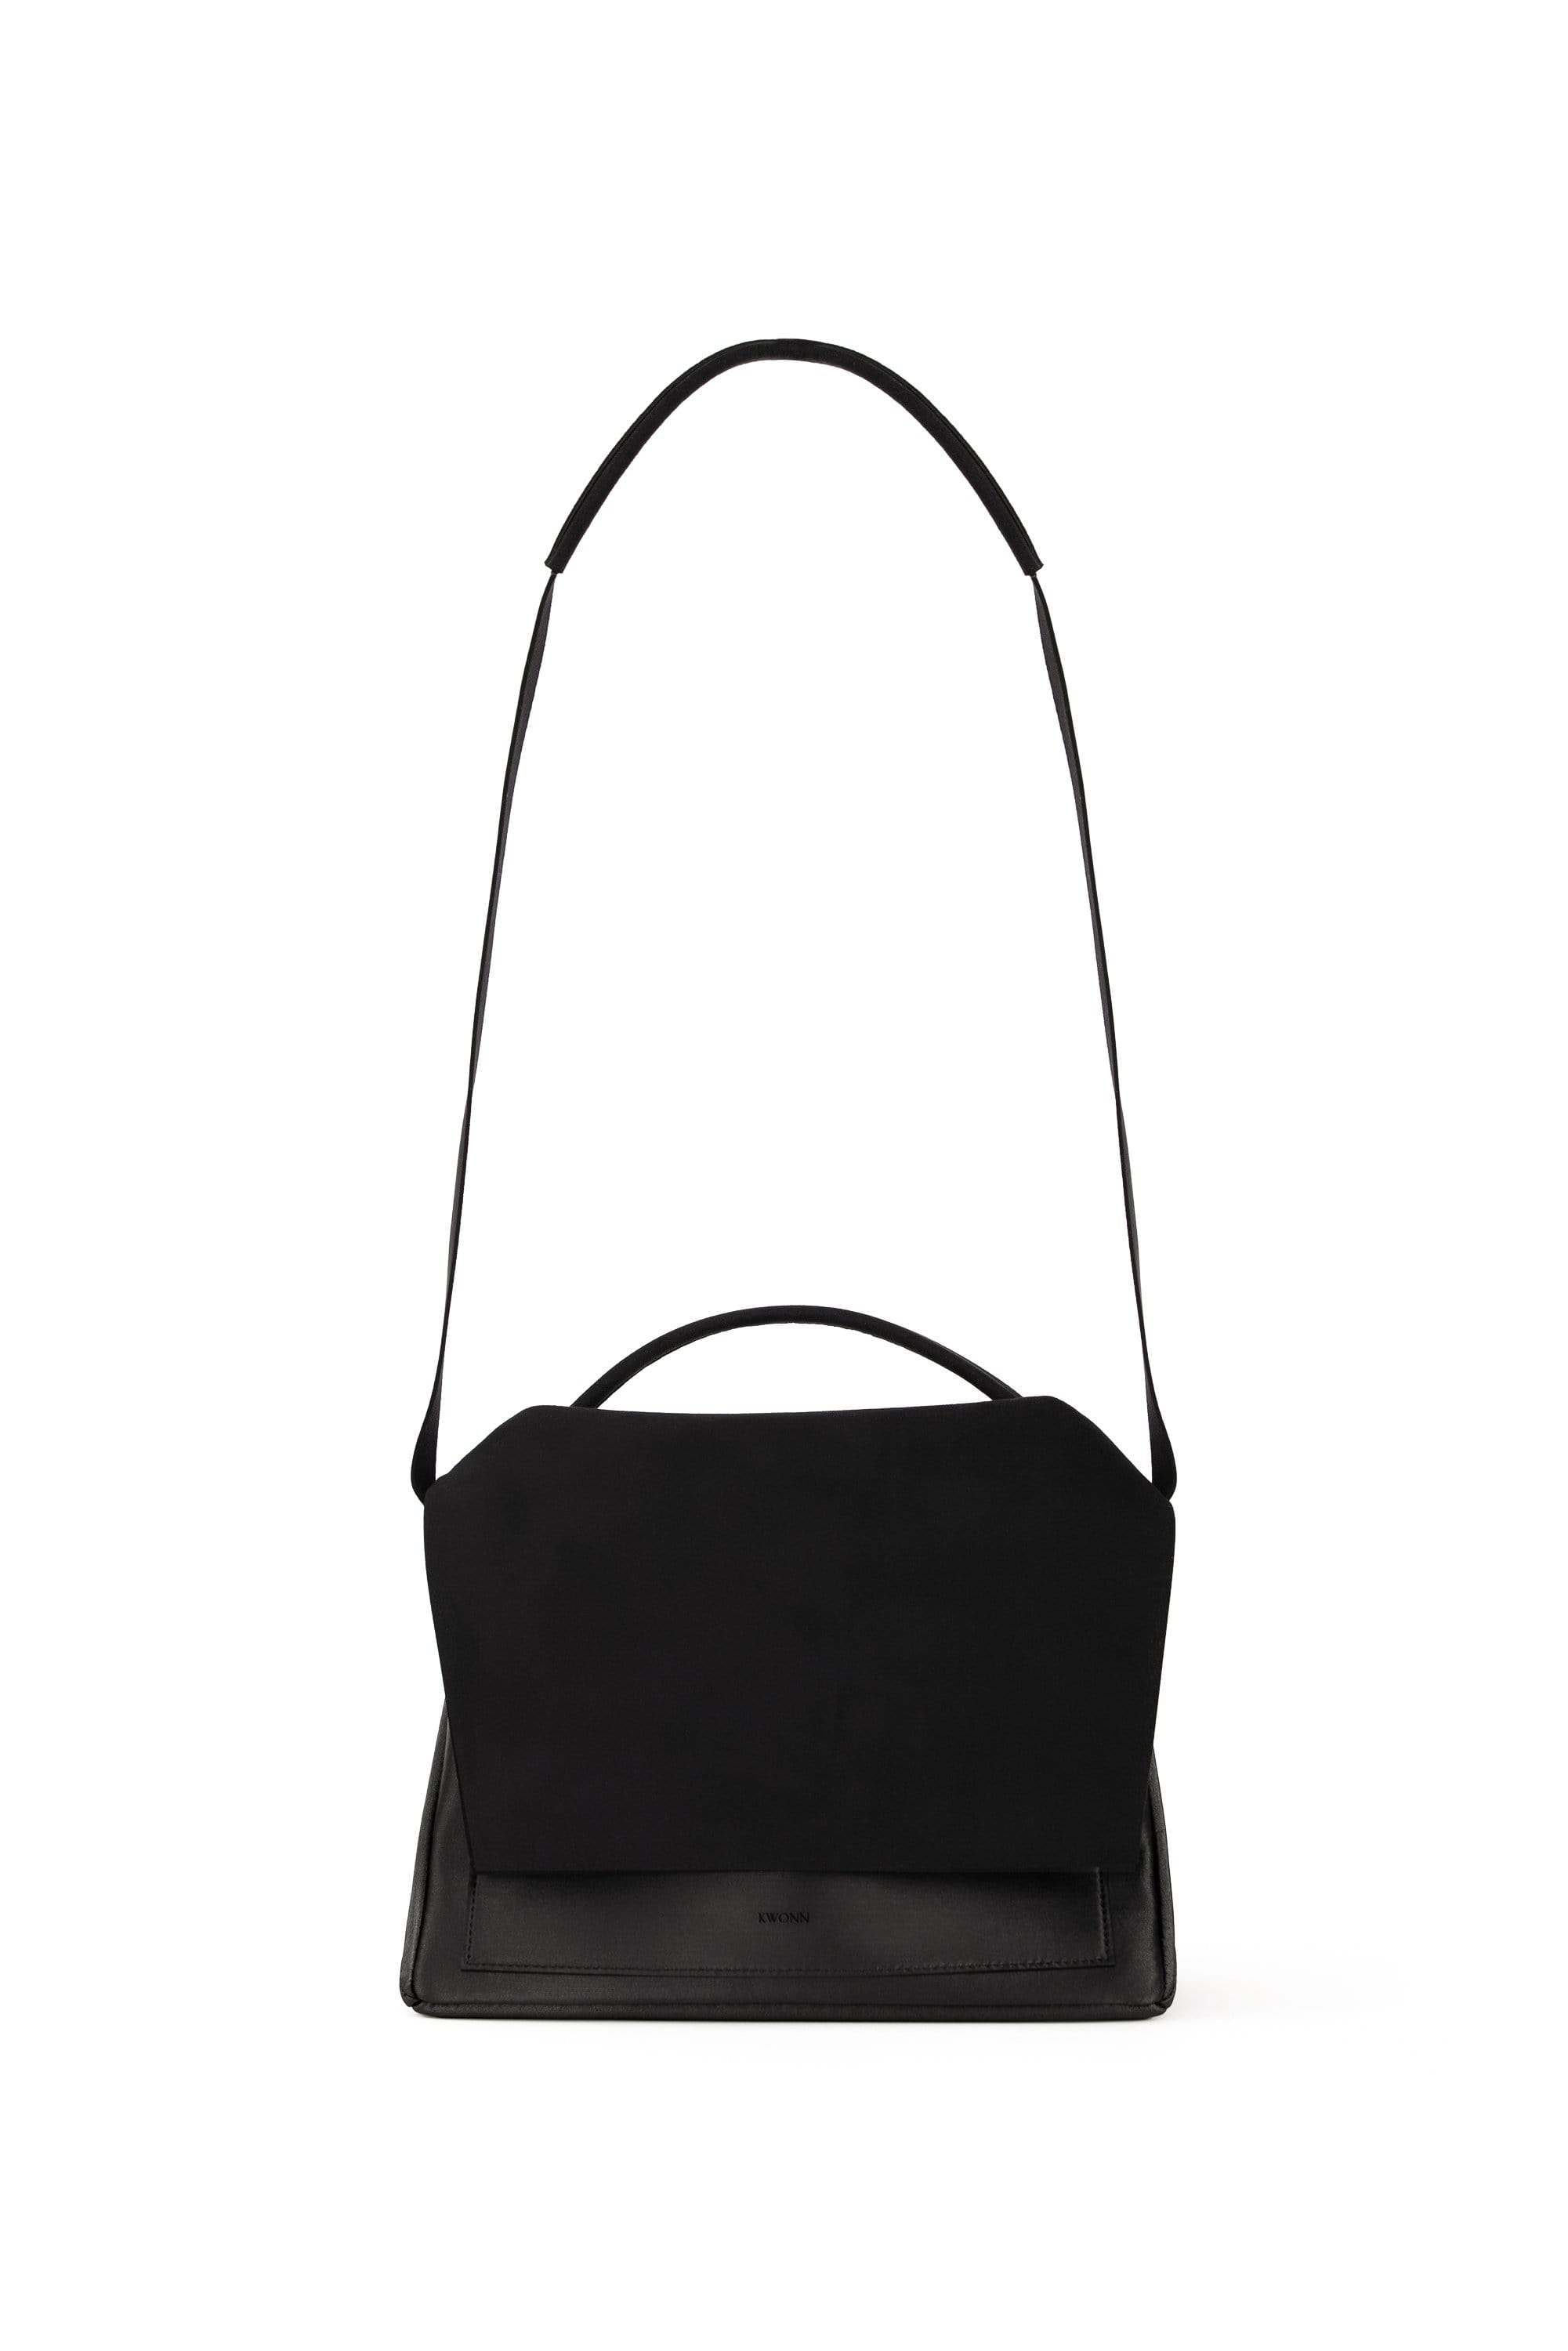 KWONN BAG Black Crossbody vegan bags luxury bags handbags